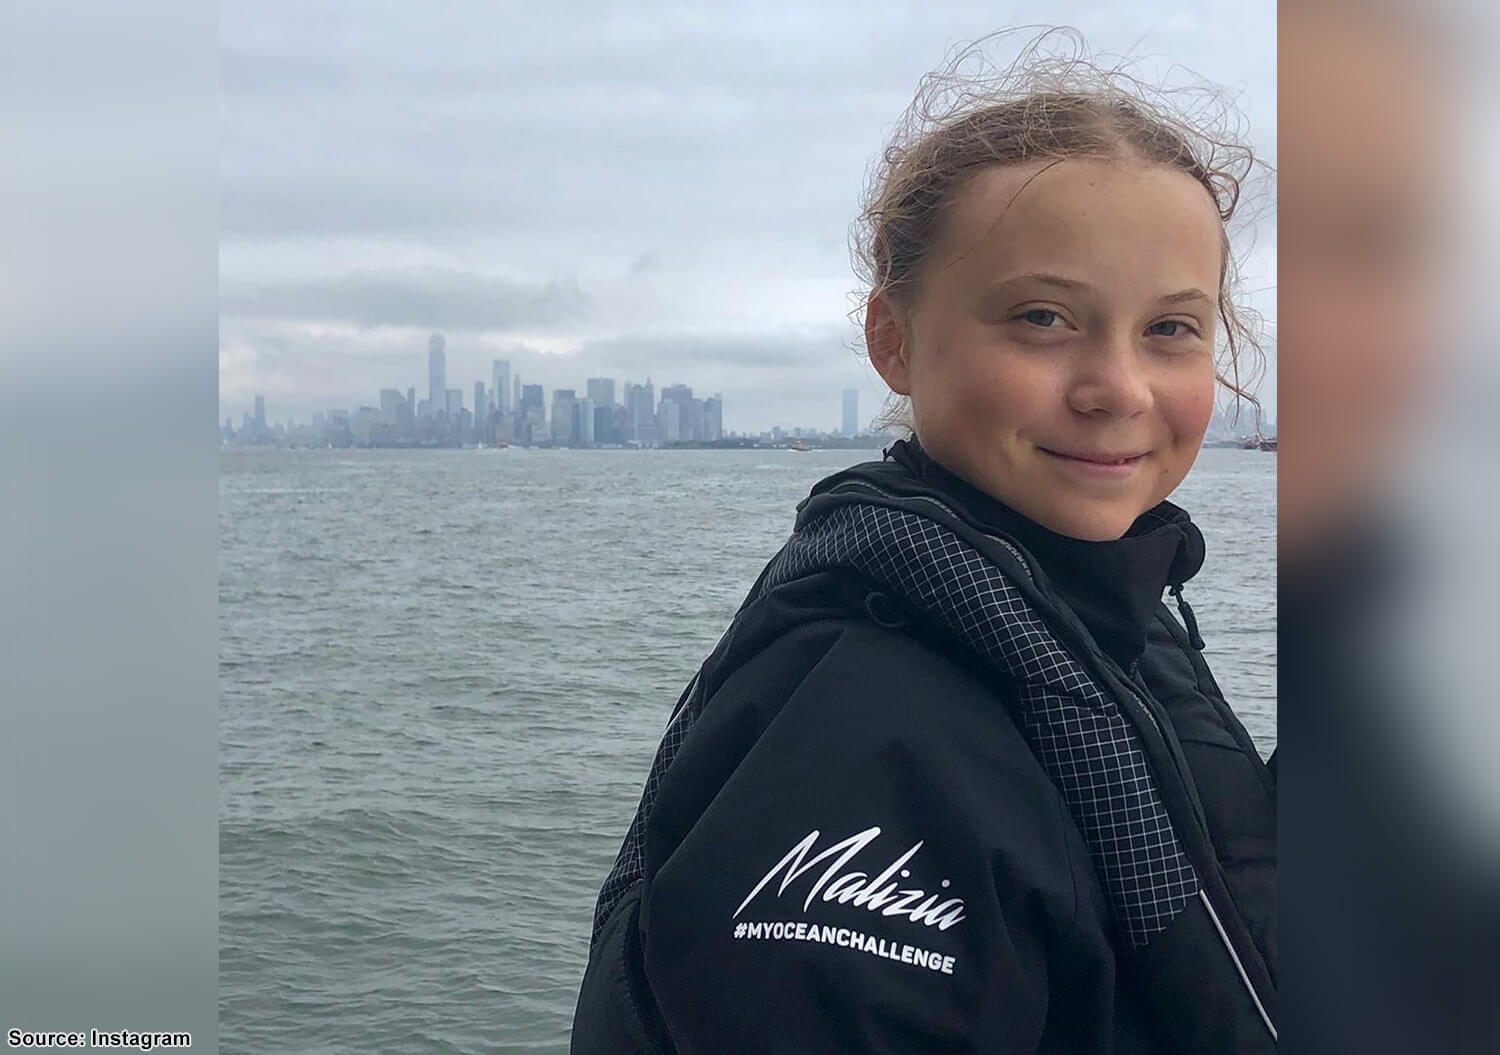 Swedish Teen Climate Activist Sails Into New York for UN Summit